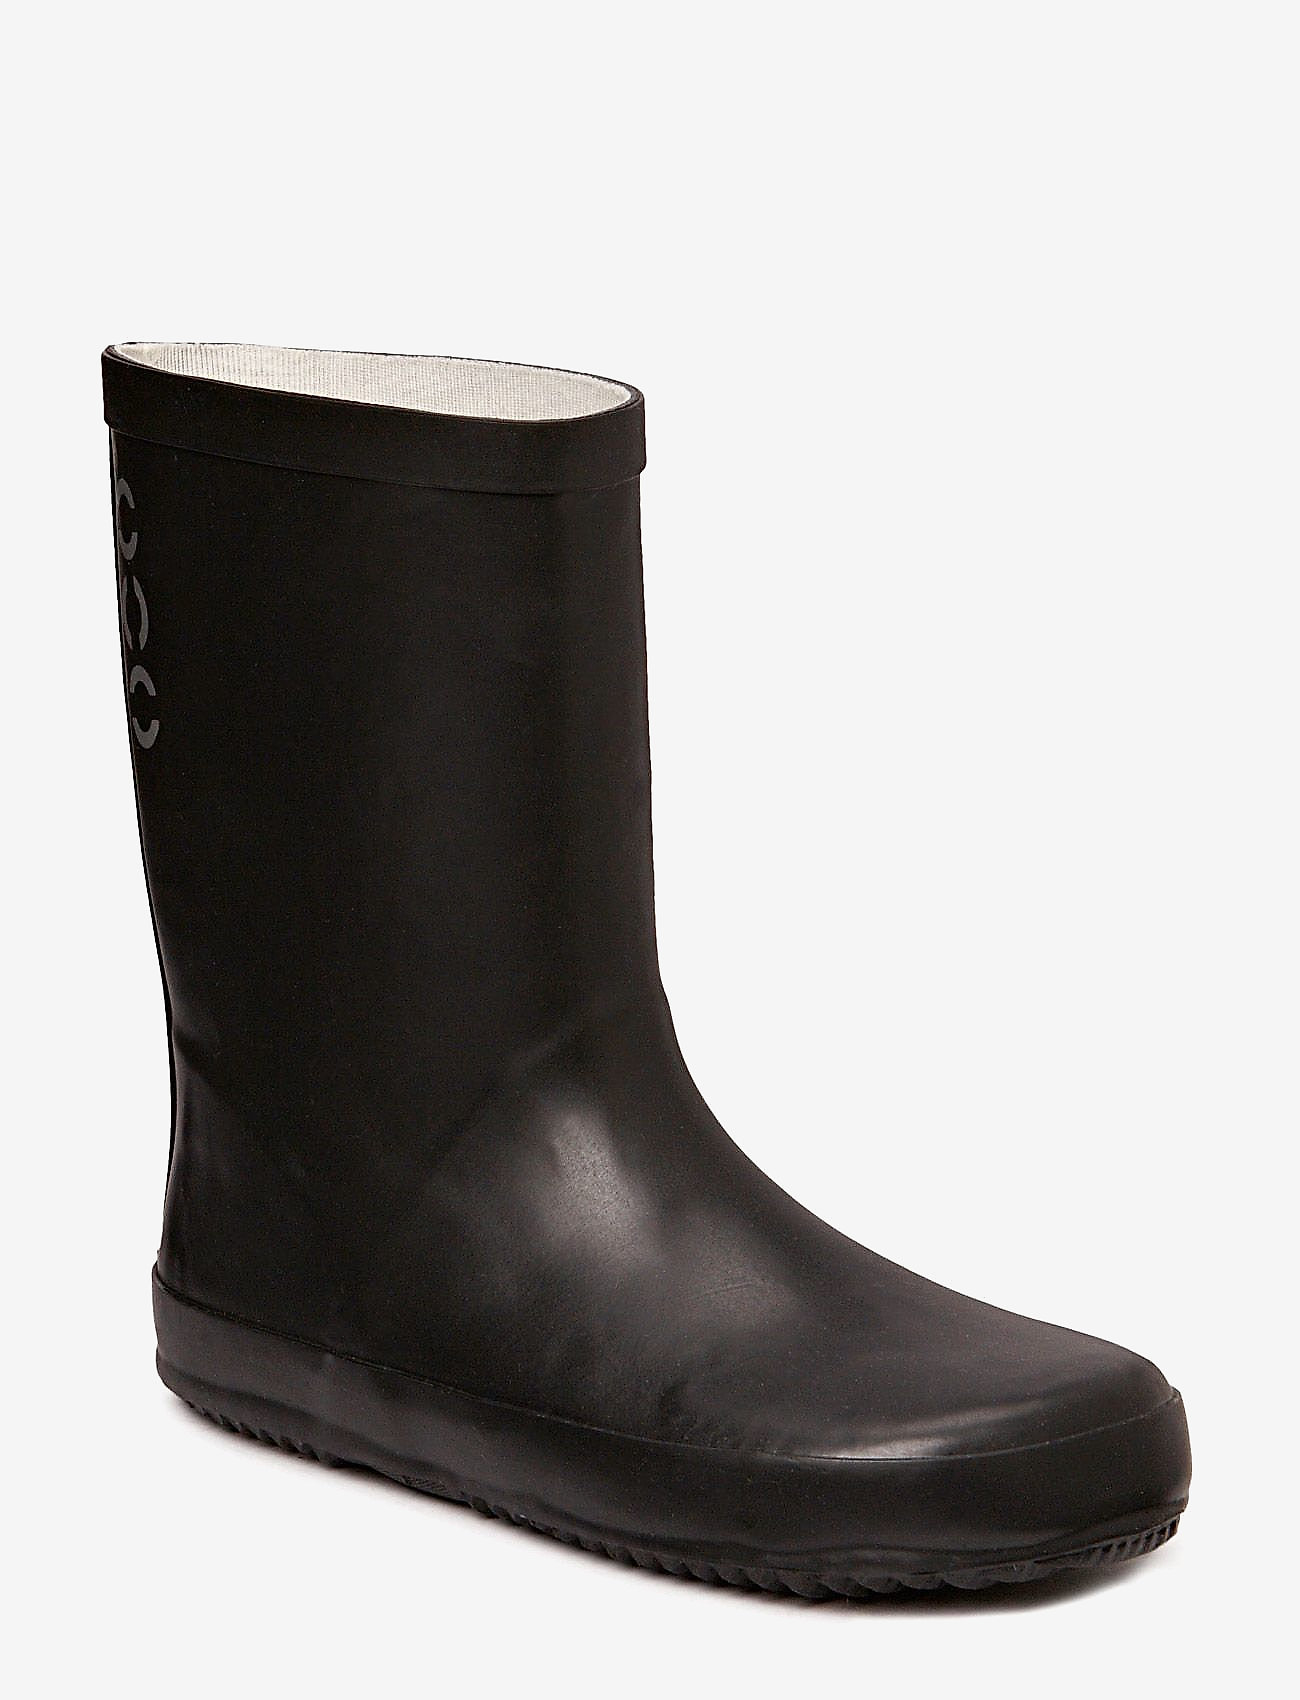 Mikk-Line - Wellies - solid colour - gummistövlar - 190/black - 0